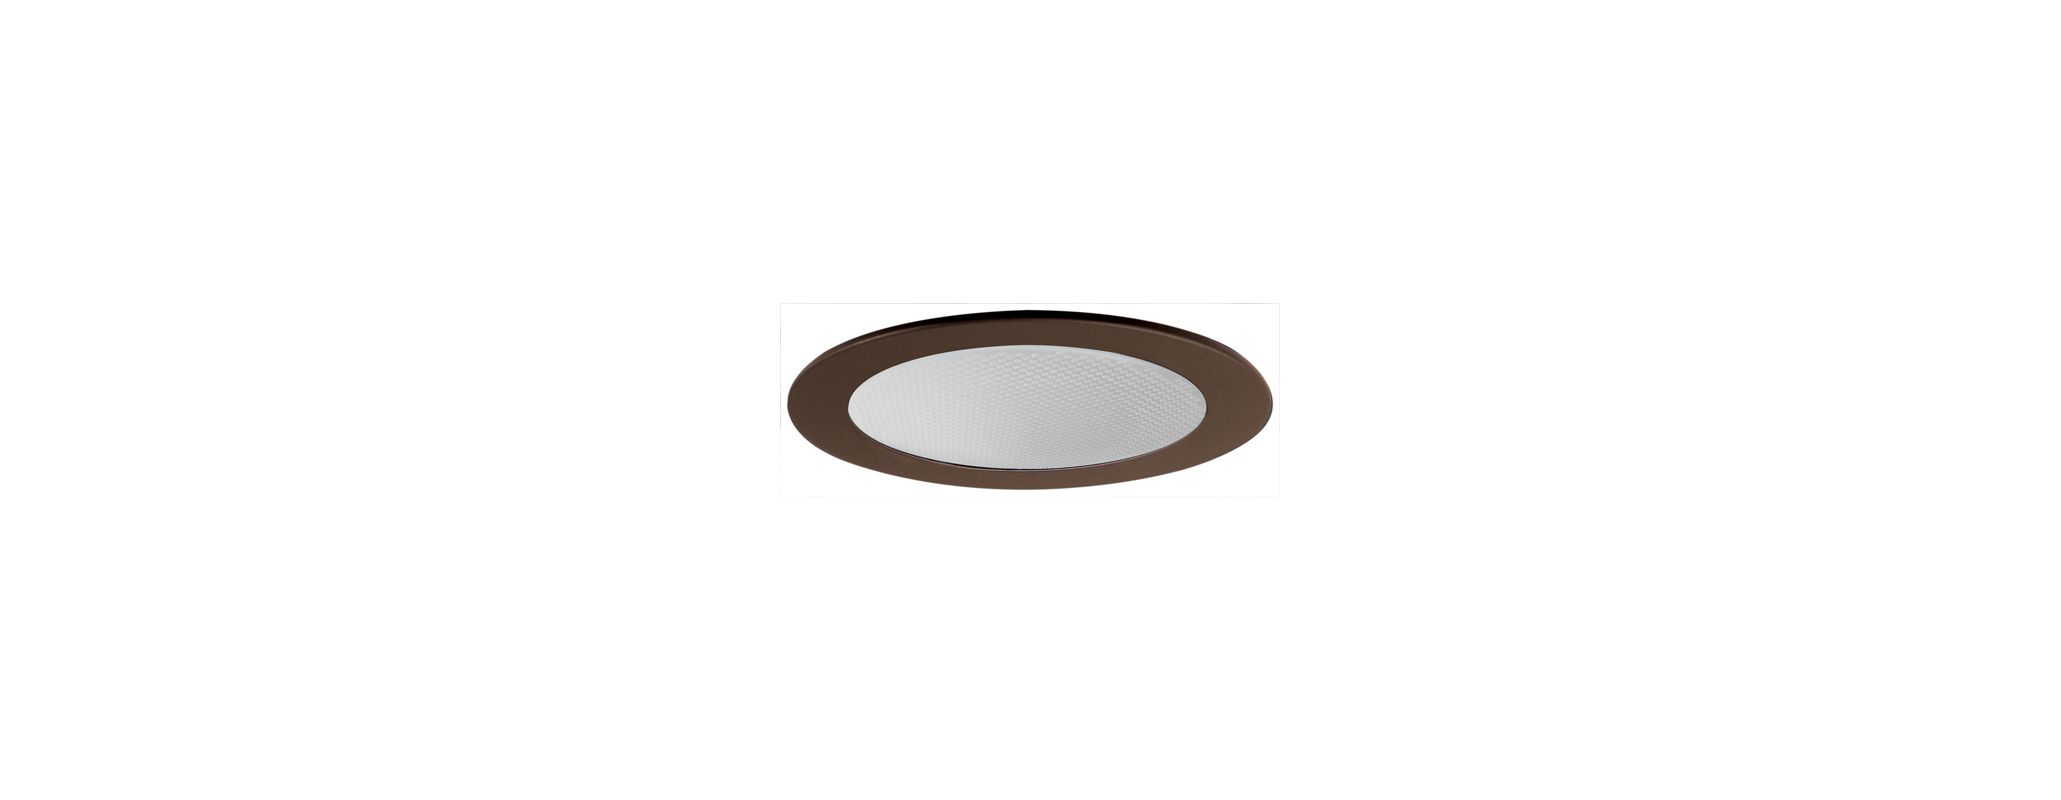 "Elco EL914 4"" Shower Trim with Albalite Lens Bronze Recessed Lights"